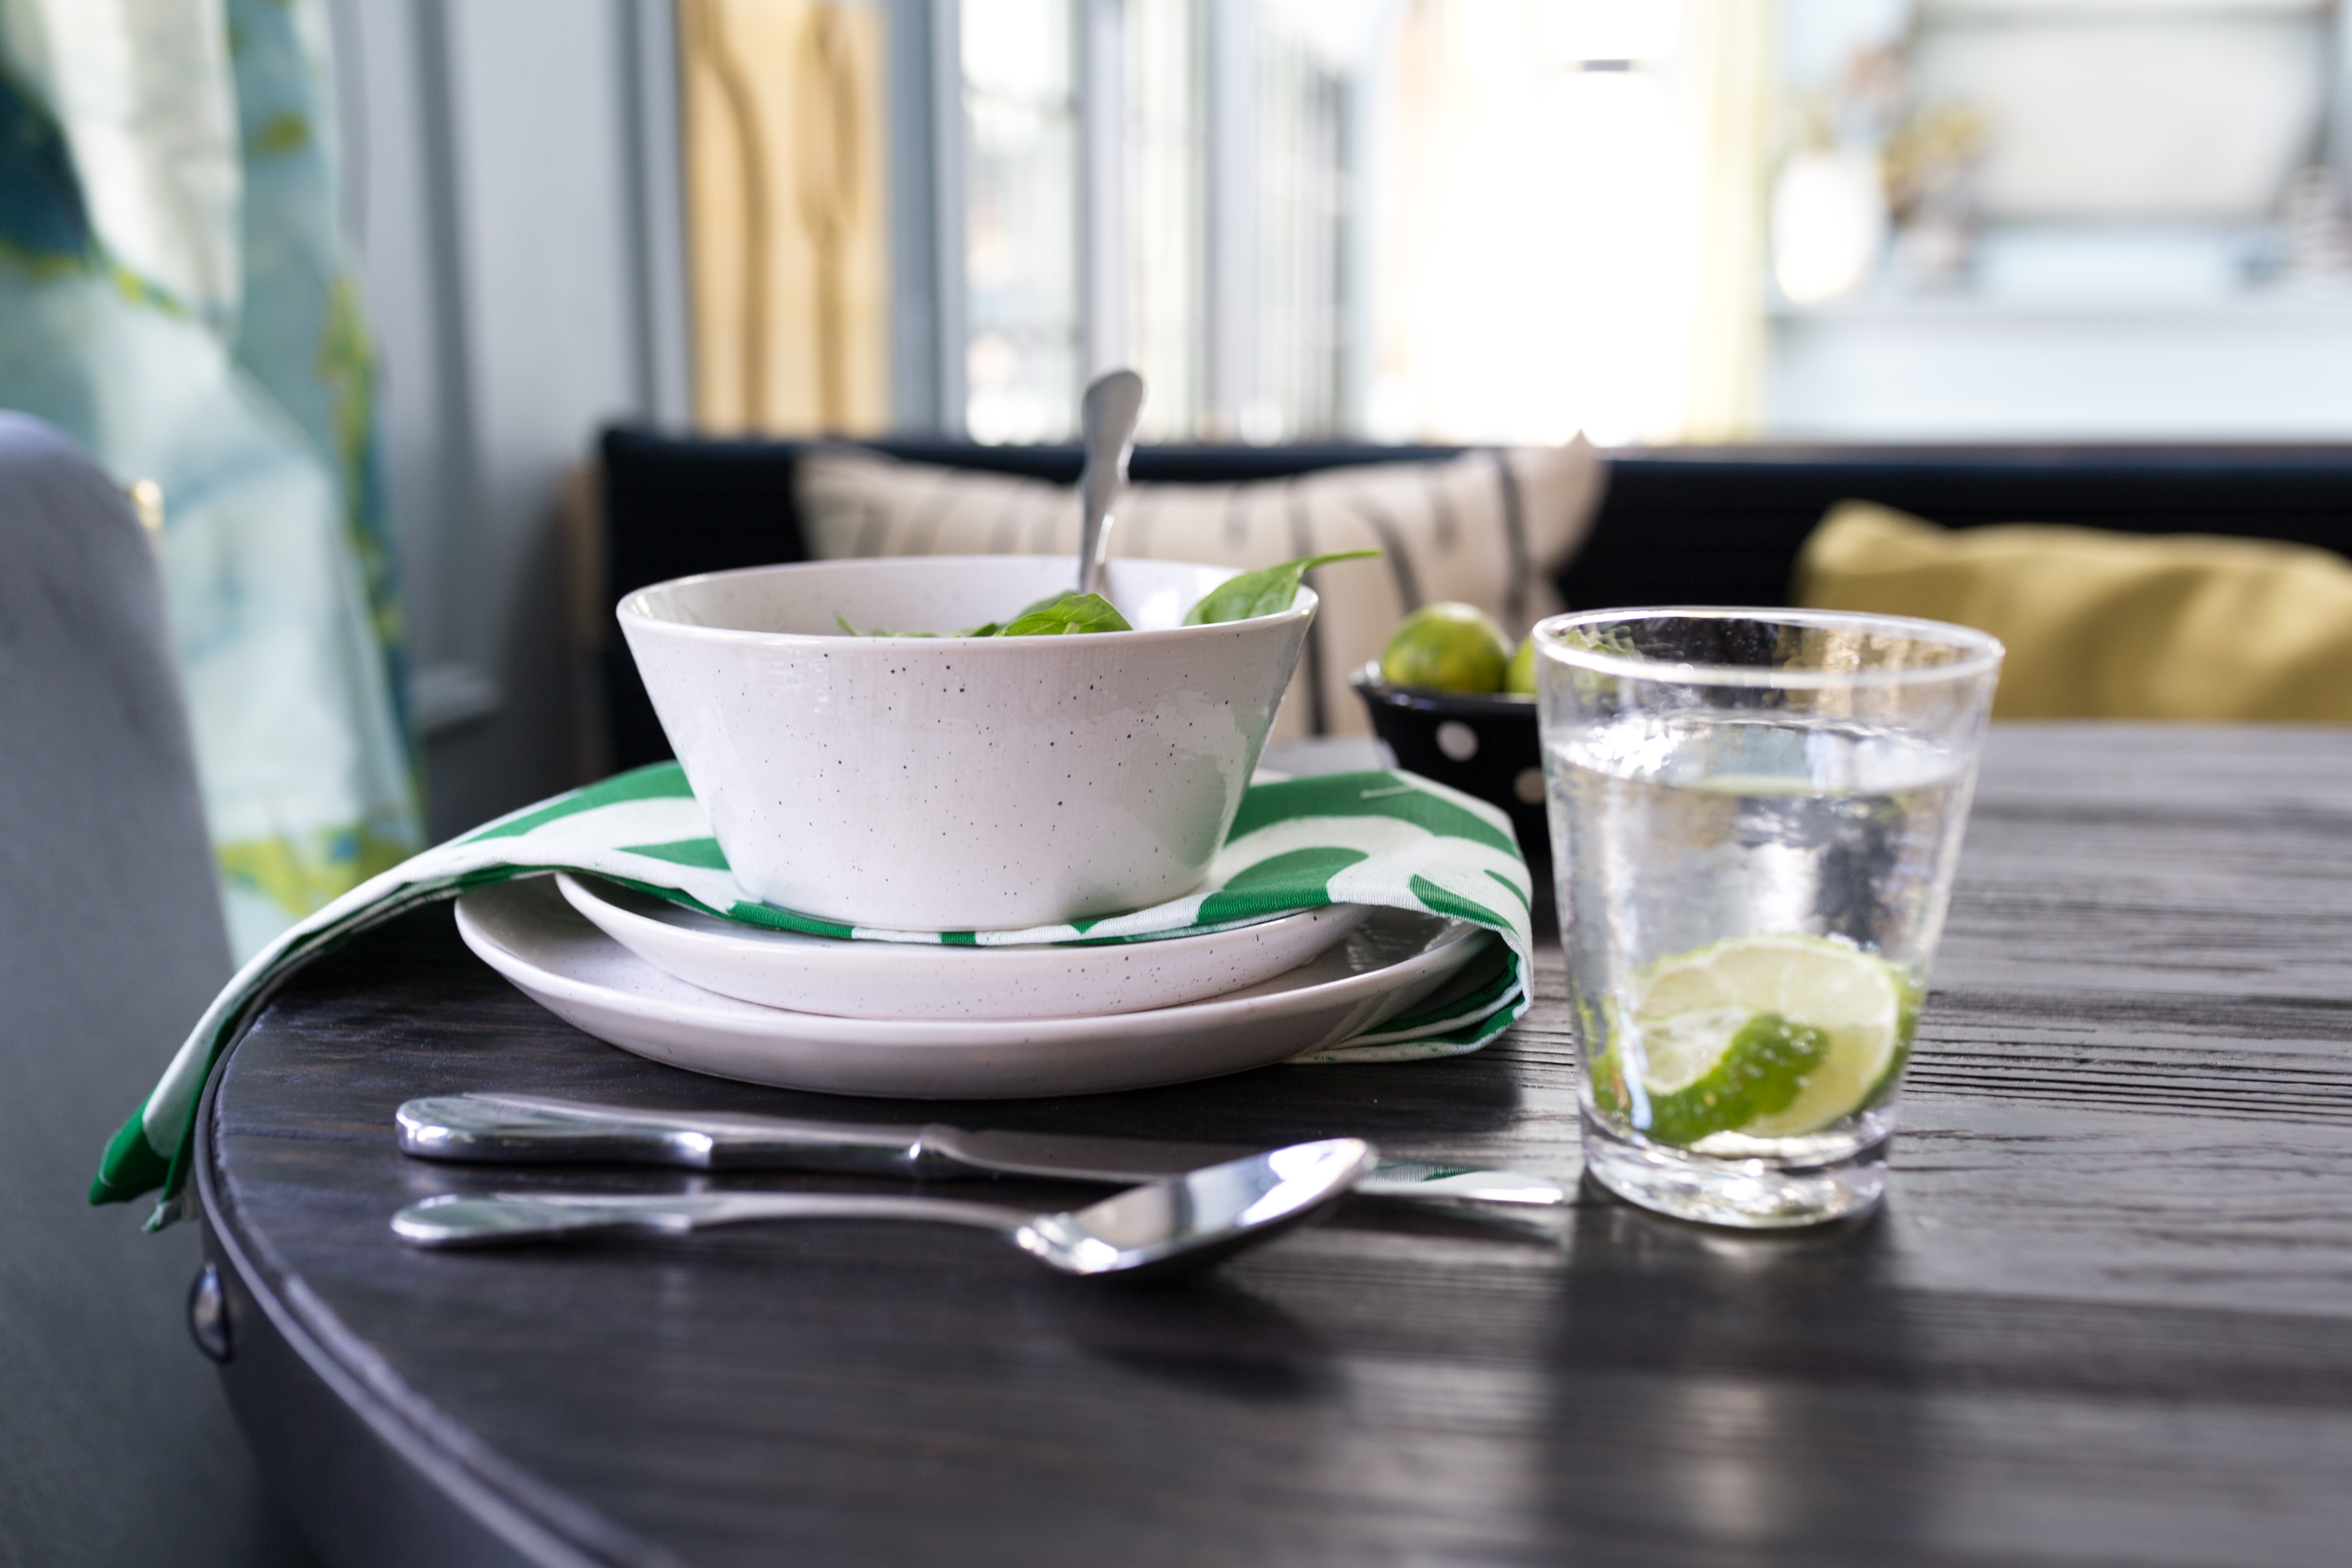 Jeweled Interiors Fall 2019 ORC, kirkland's dishes, spooflower napkins, green